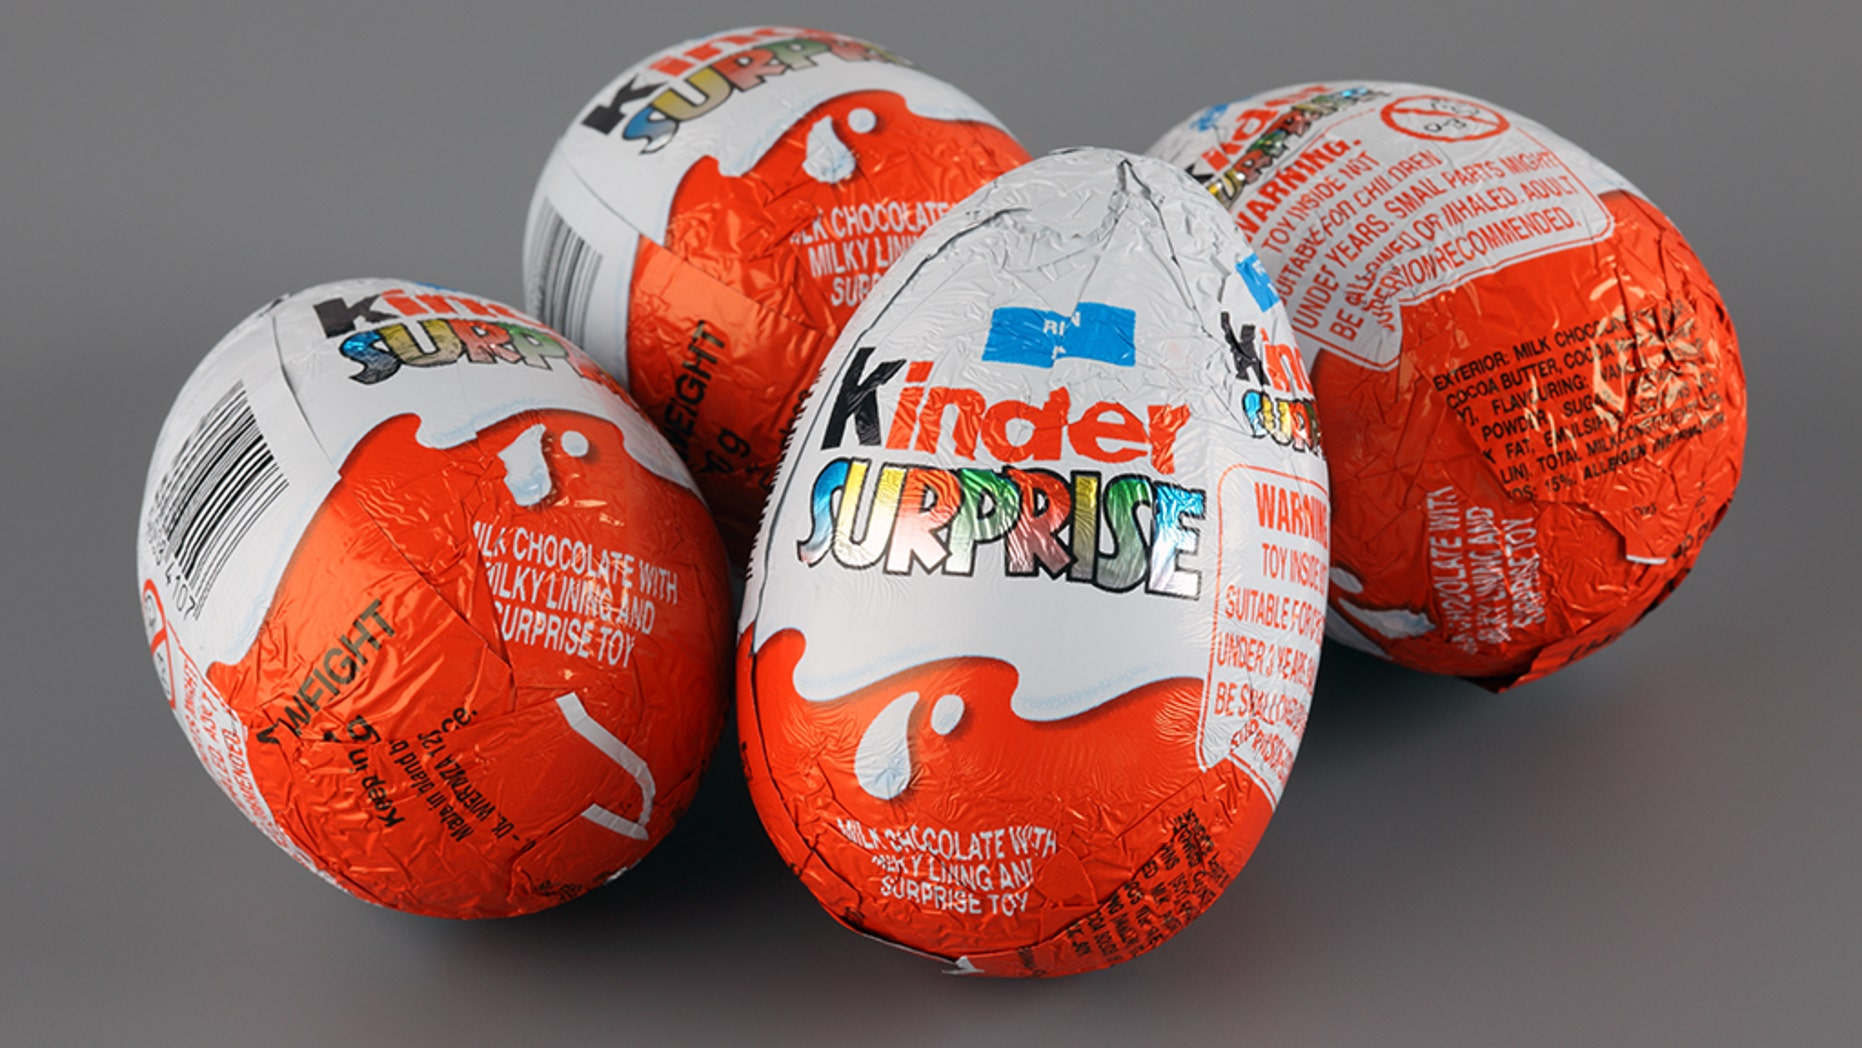 Each Kinder Surprise egg consists of a chocolate shell, a plastic capsule, the contents of said capsule, and an external foil wrap.